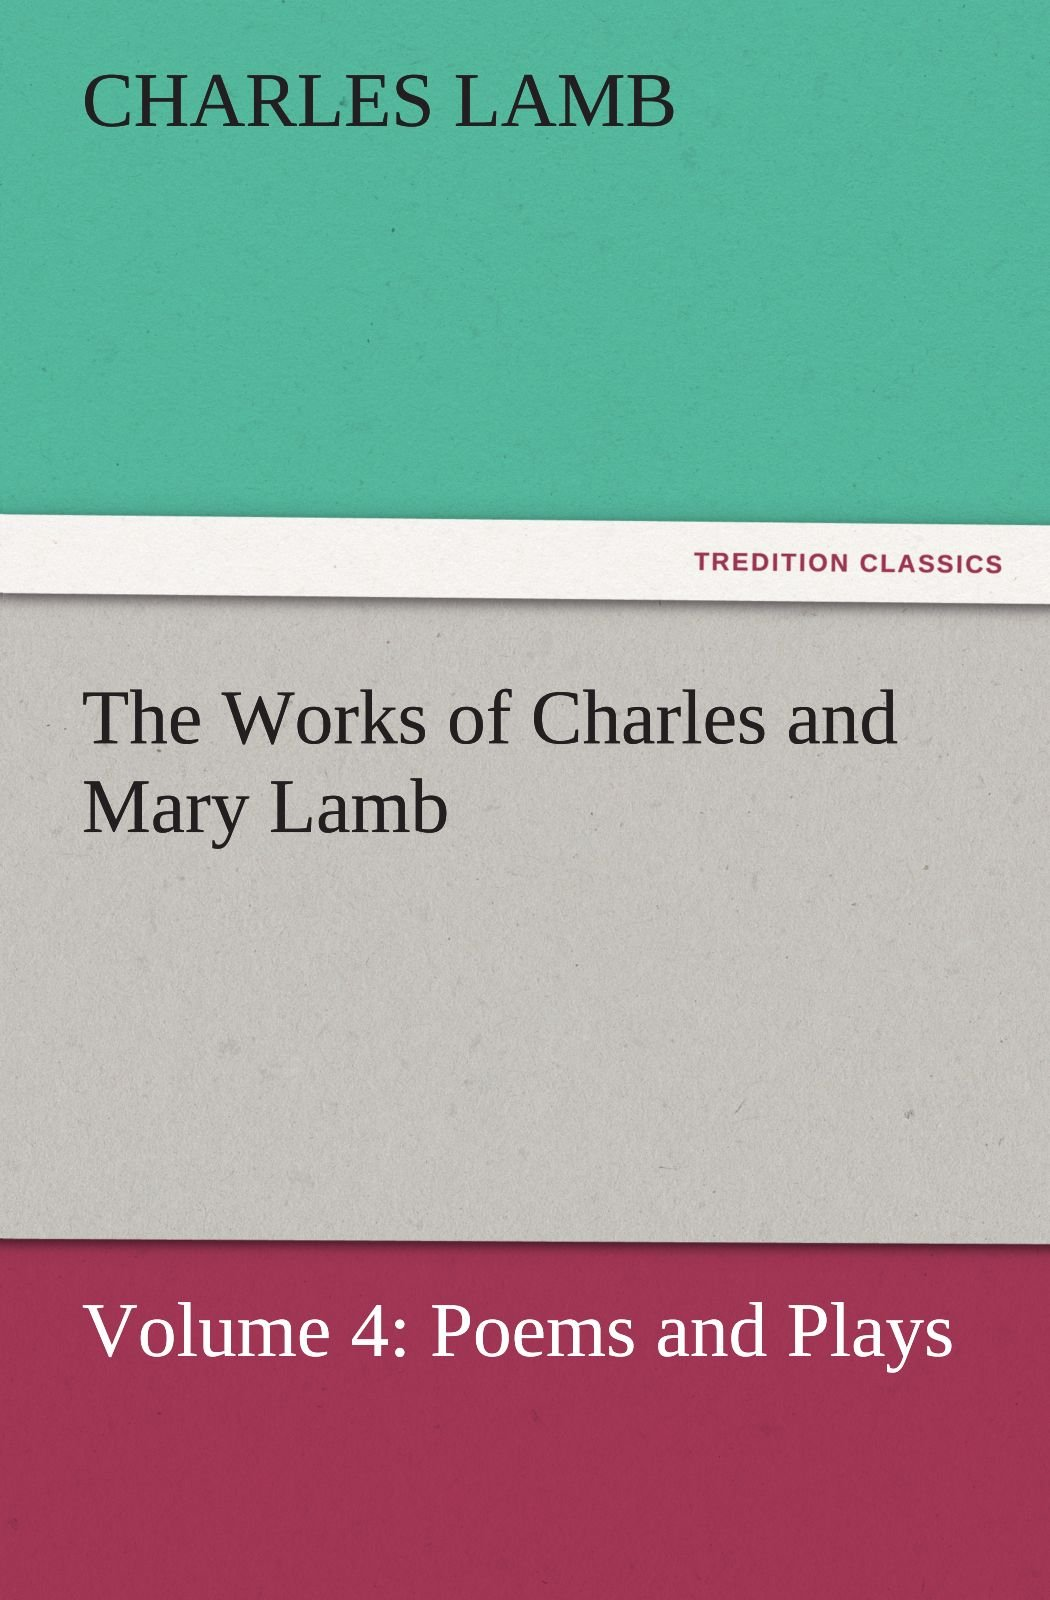 The Works of Charles and Mary Lamb: Volume 4: Poems and Plays (TREDITION CLASSICS) PDF